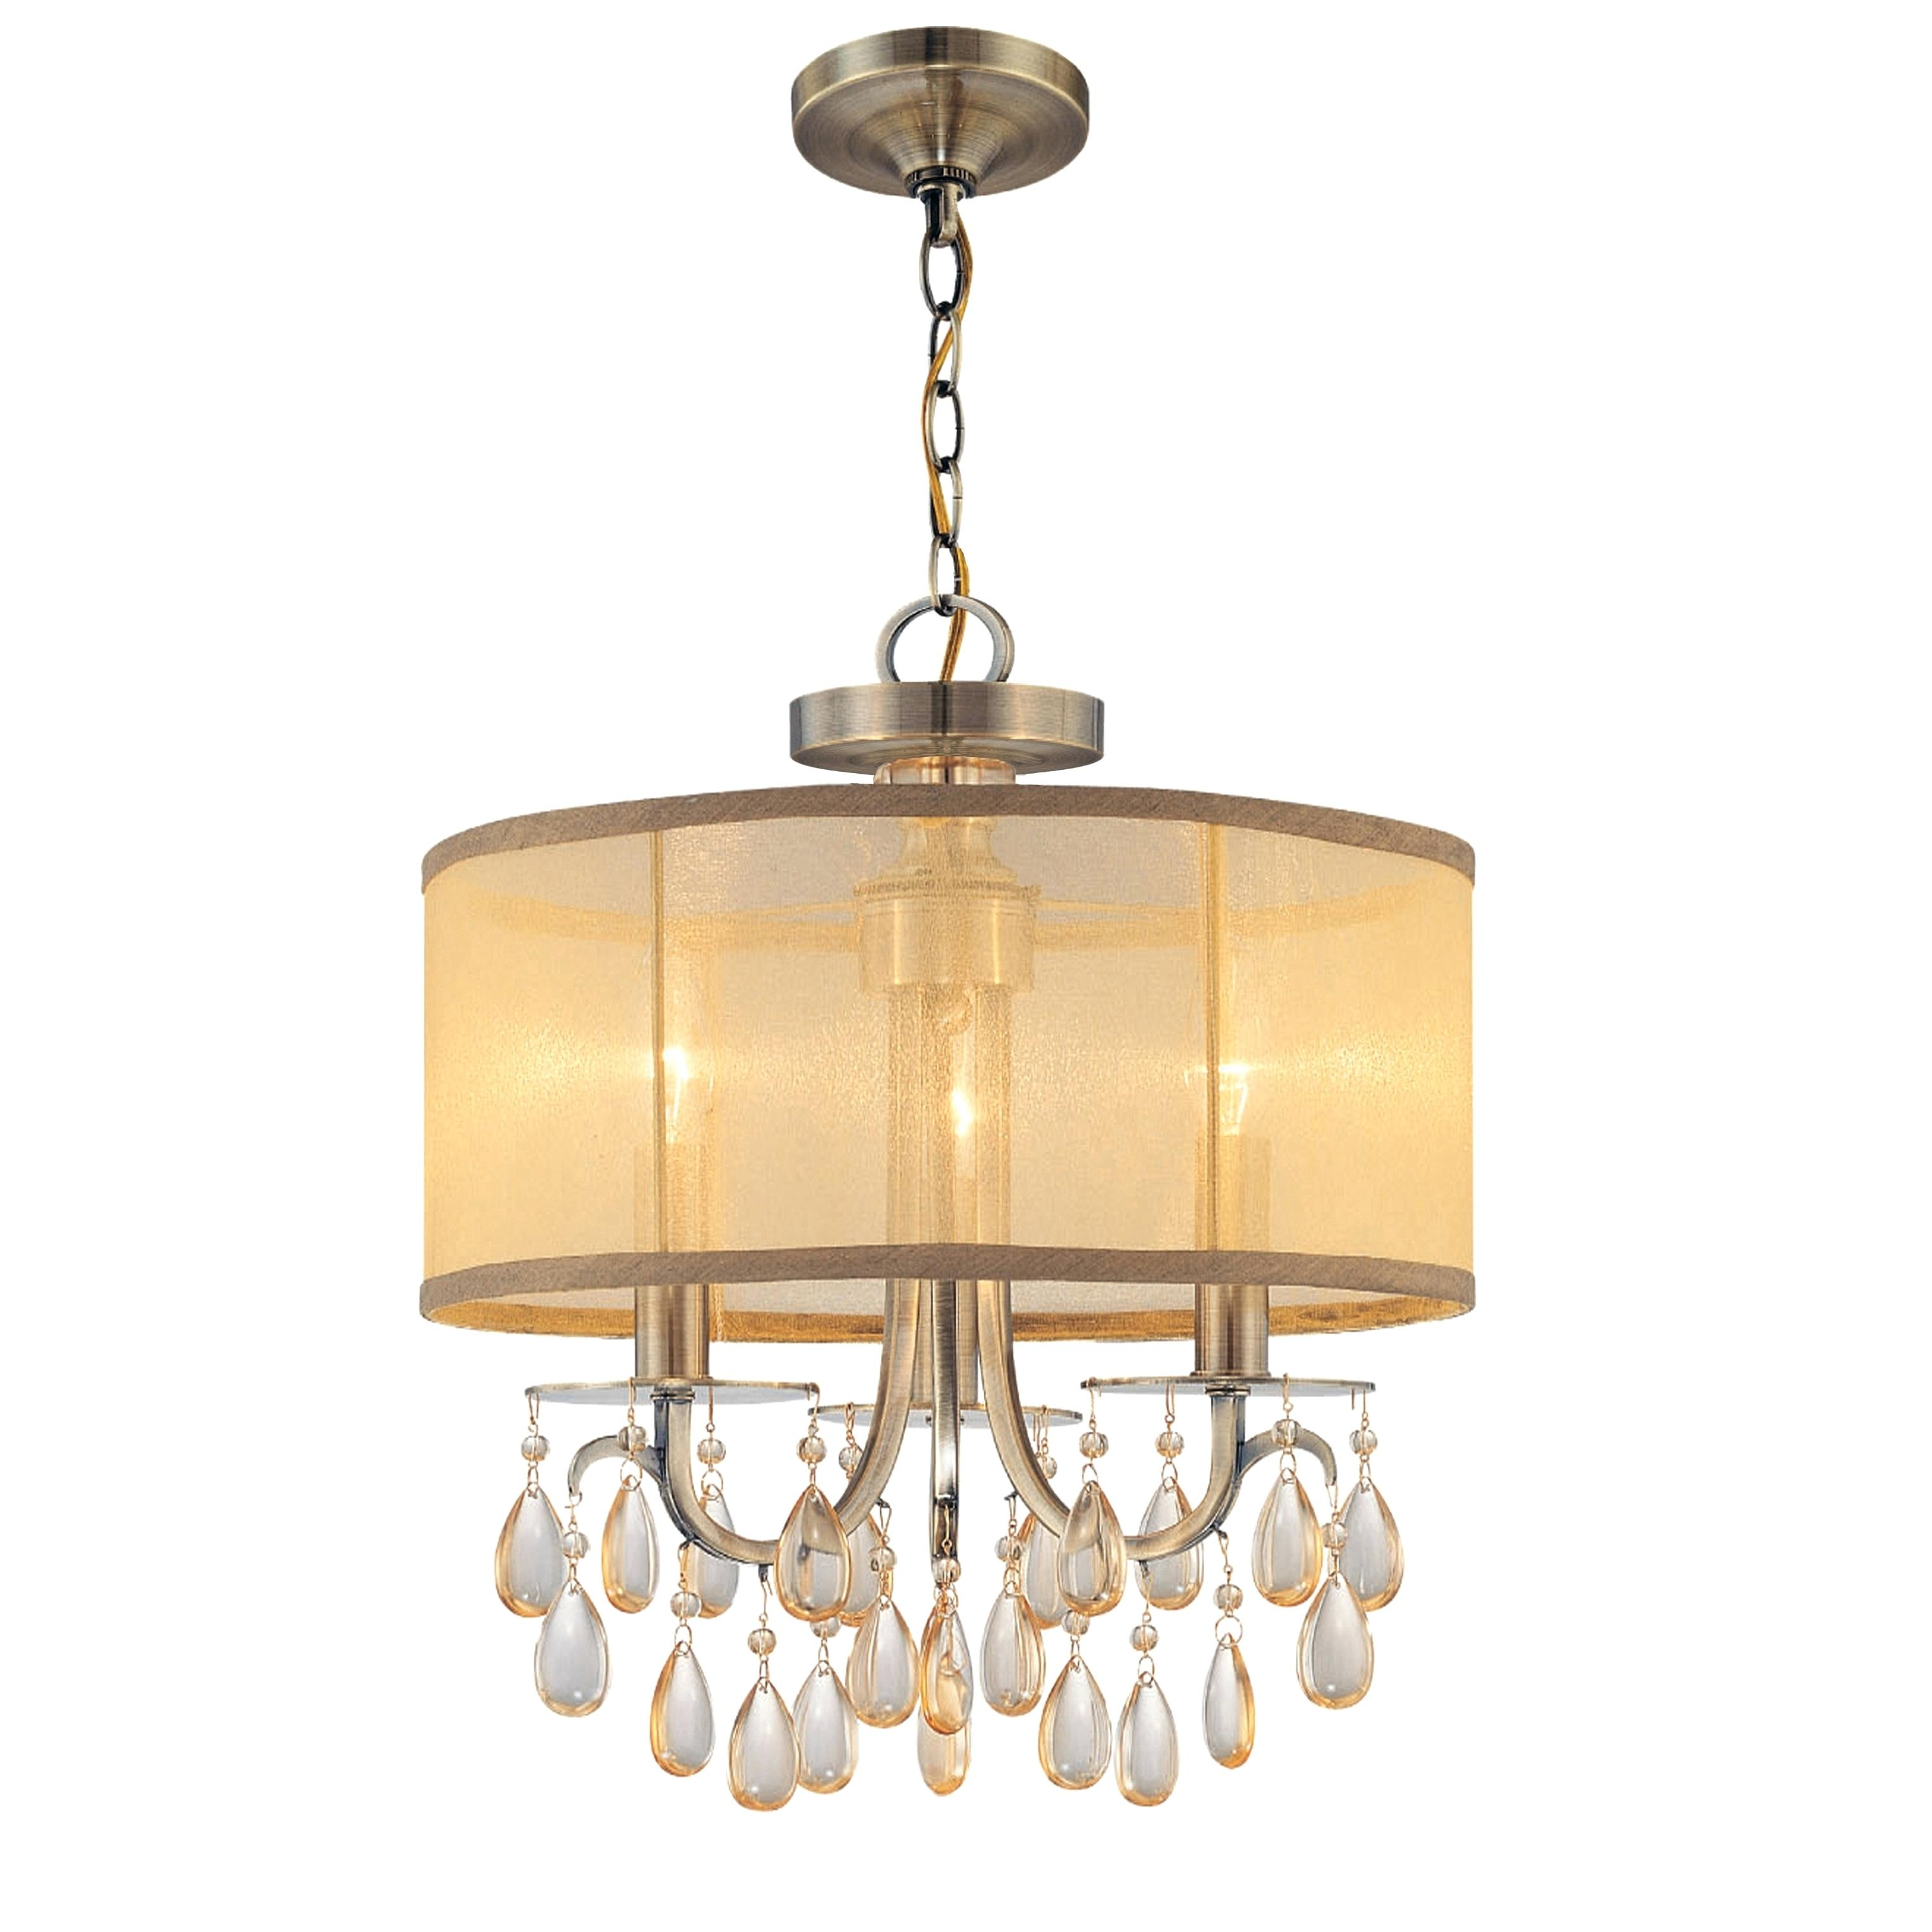 Hampton Bay Chandelier Engageri With Regard To Large Black Chandelier (Image 7 of 15)